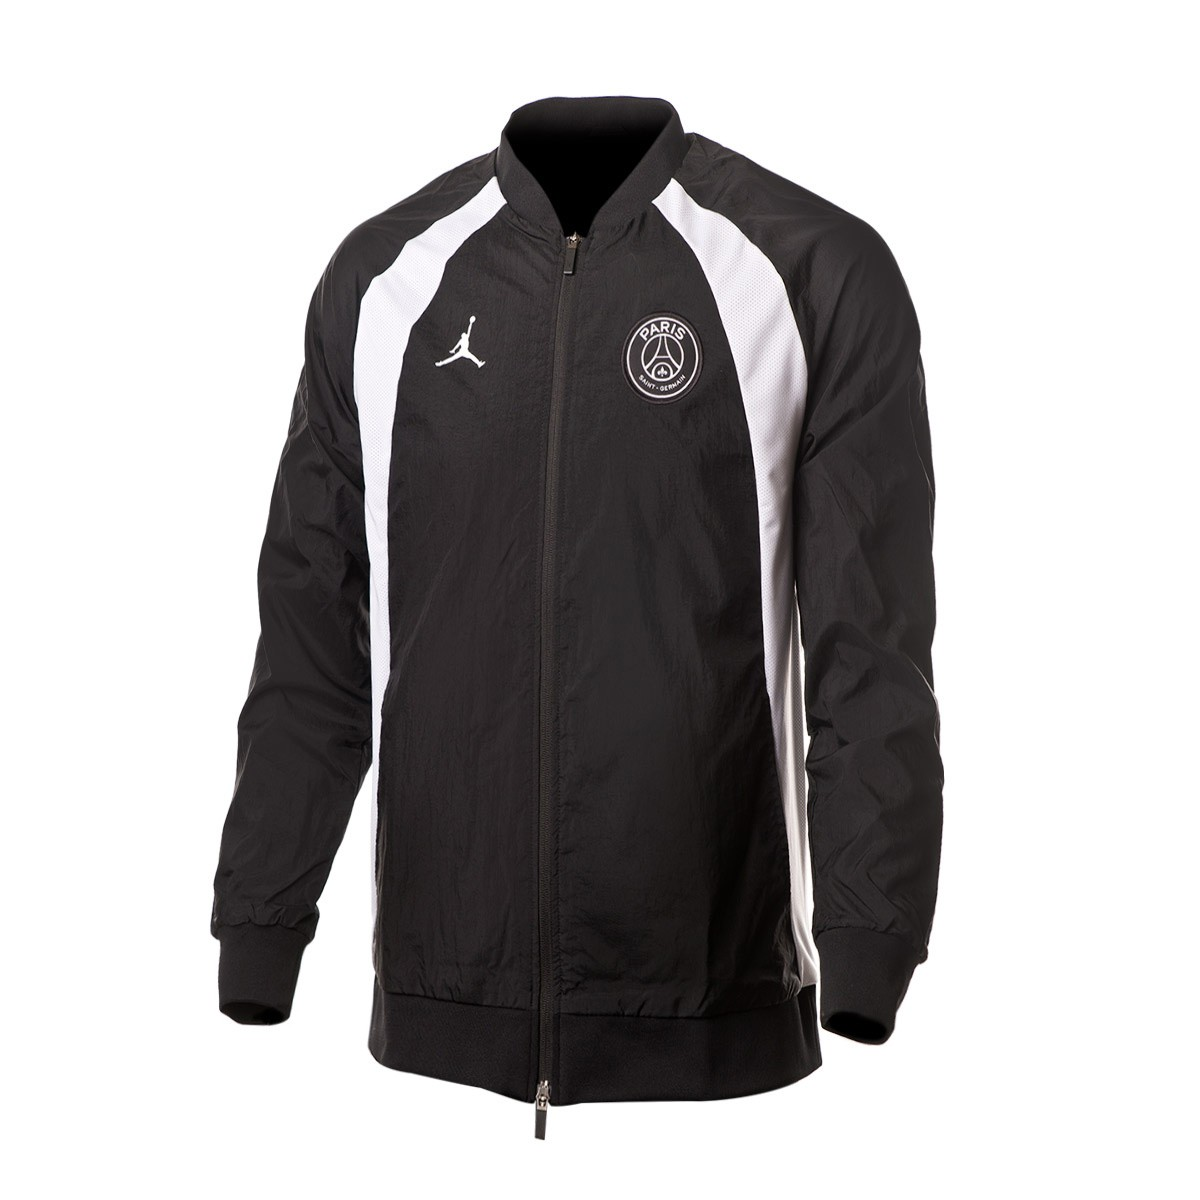 super popular 7c6f7 6bb0c Nike Jordan x PSG AJ1 Jacket. Black-White ...